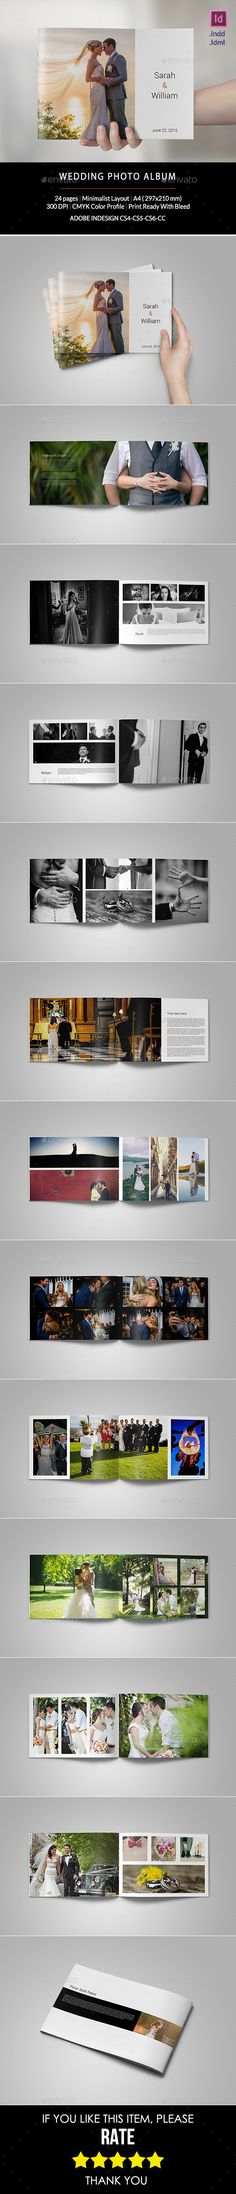 Wedding Photo Album — InDesign INDD #brochure #a4 • Available here → https://graphicriver.net/item/wedding-photo-album/10963835?ref=pxcr